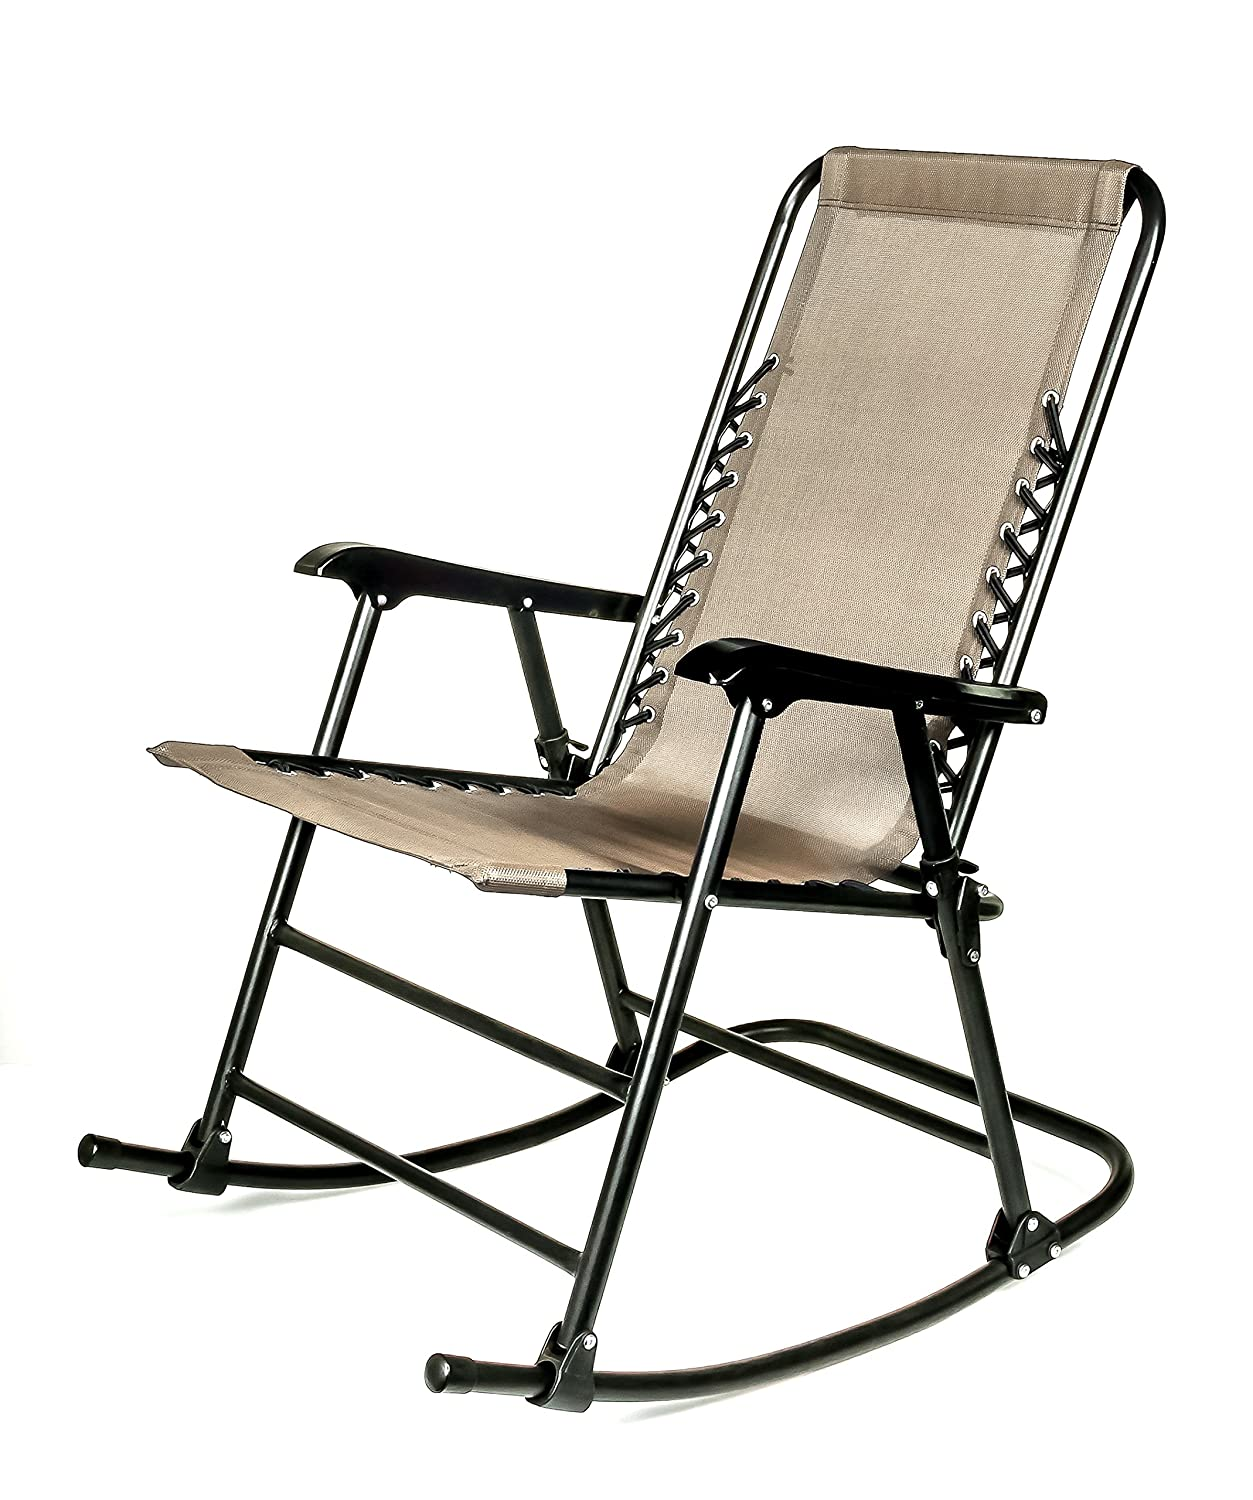 Childrens rocking camp chairs - Childrens Rocking Camp Chairs 19